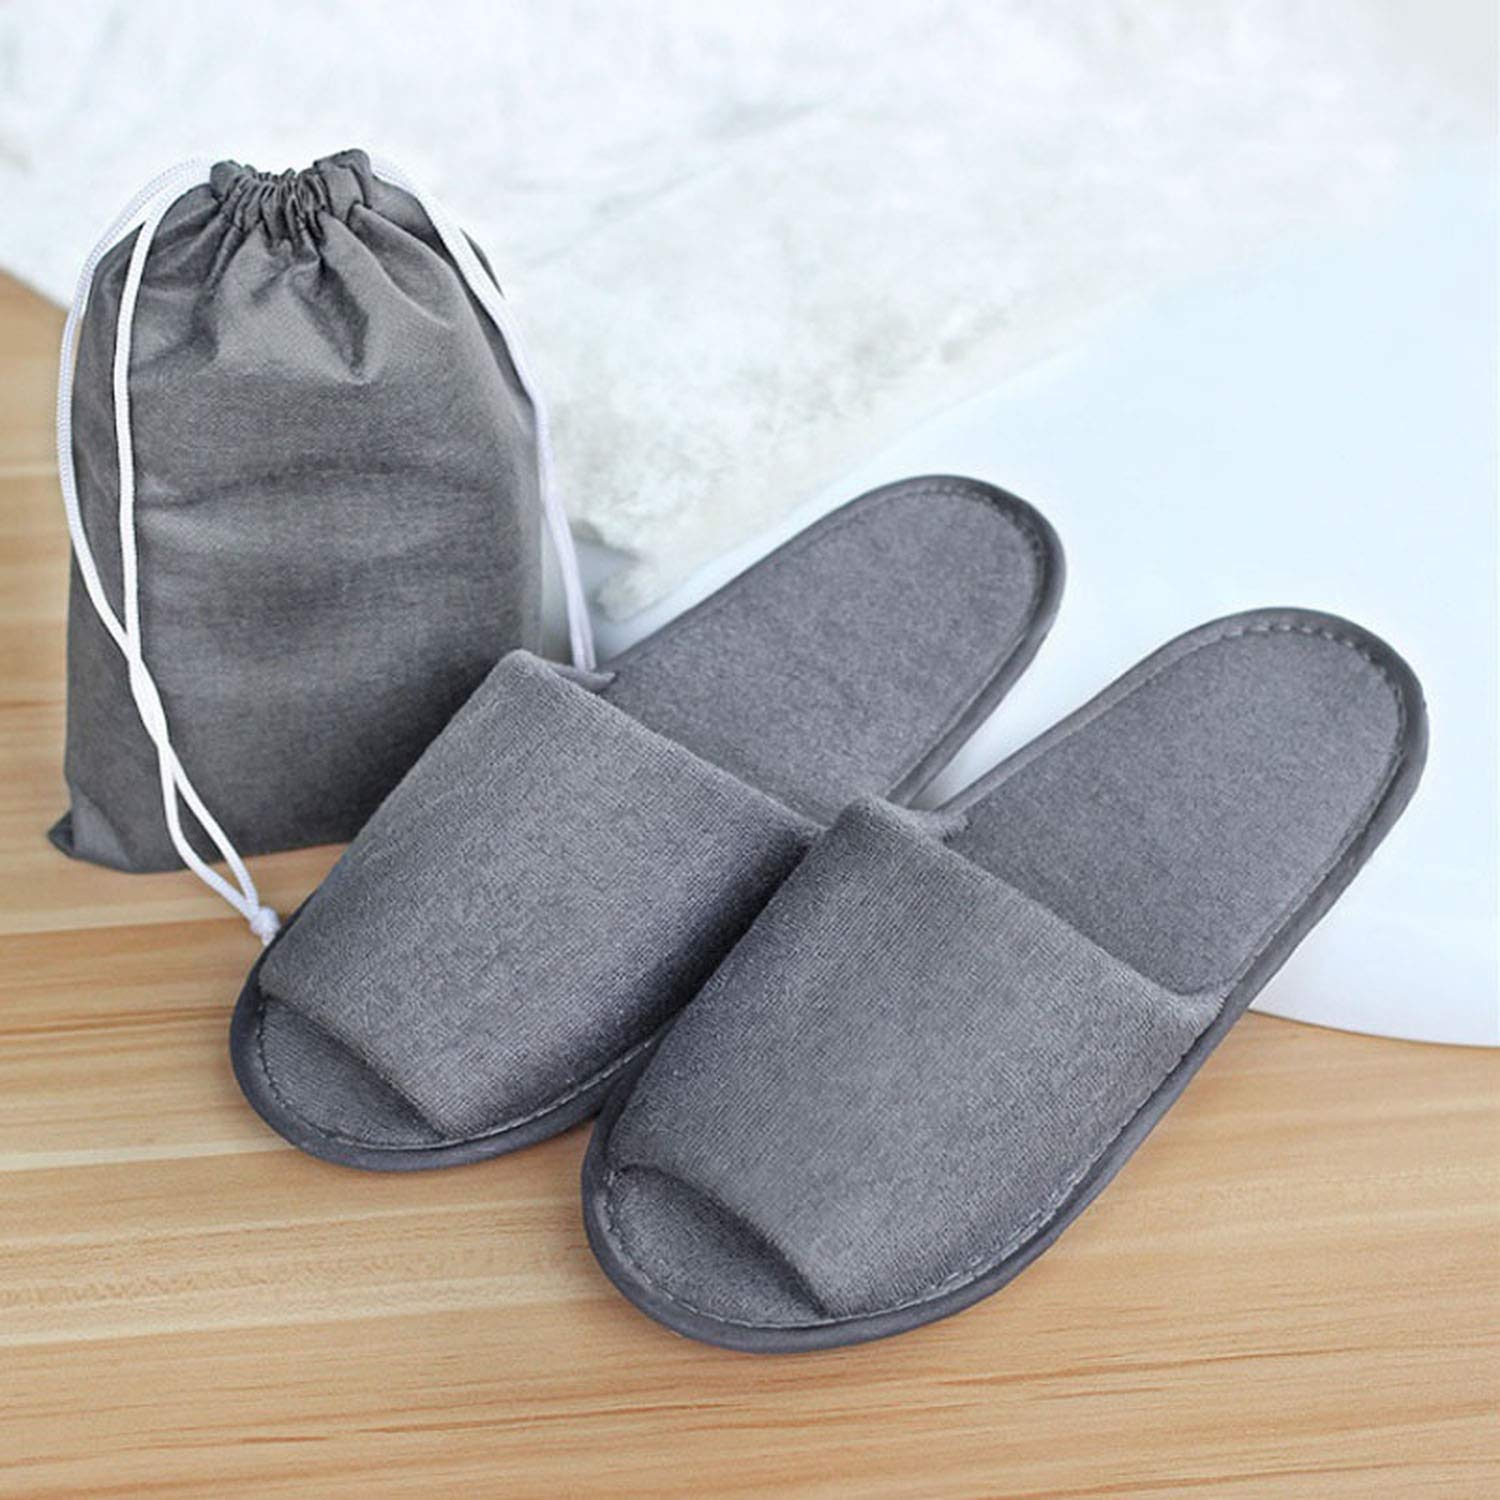 New Simple Slippers Men Women Hotel Travel Spa Portable Folding House Slippers Indoor Shoes